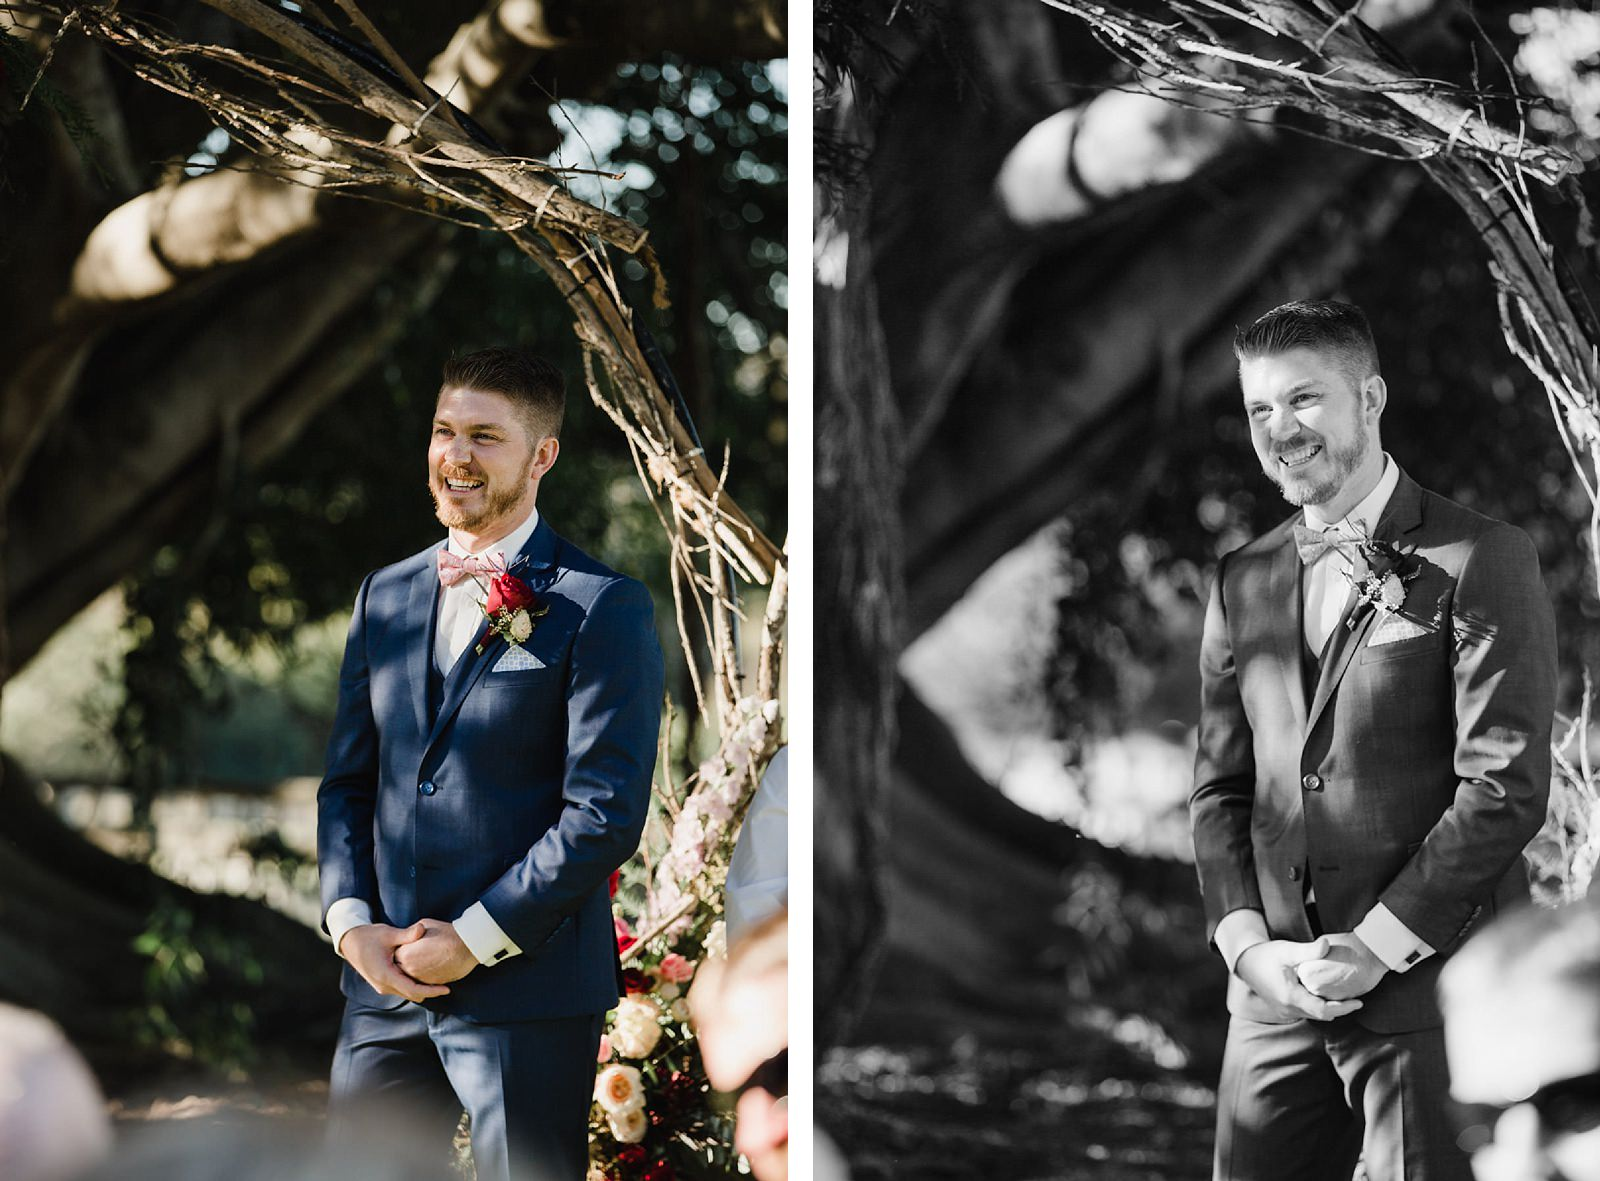 048Hunter Valley Wedding Photographers Bryce Noone Photography at Tocal Homestead Wedding Venue.jpg